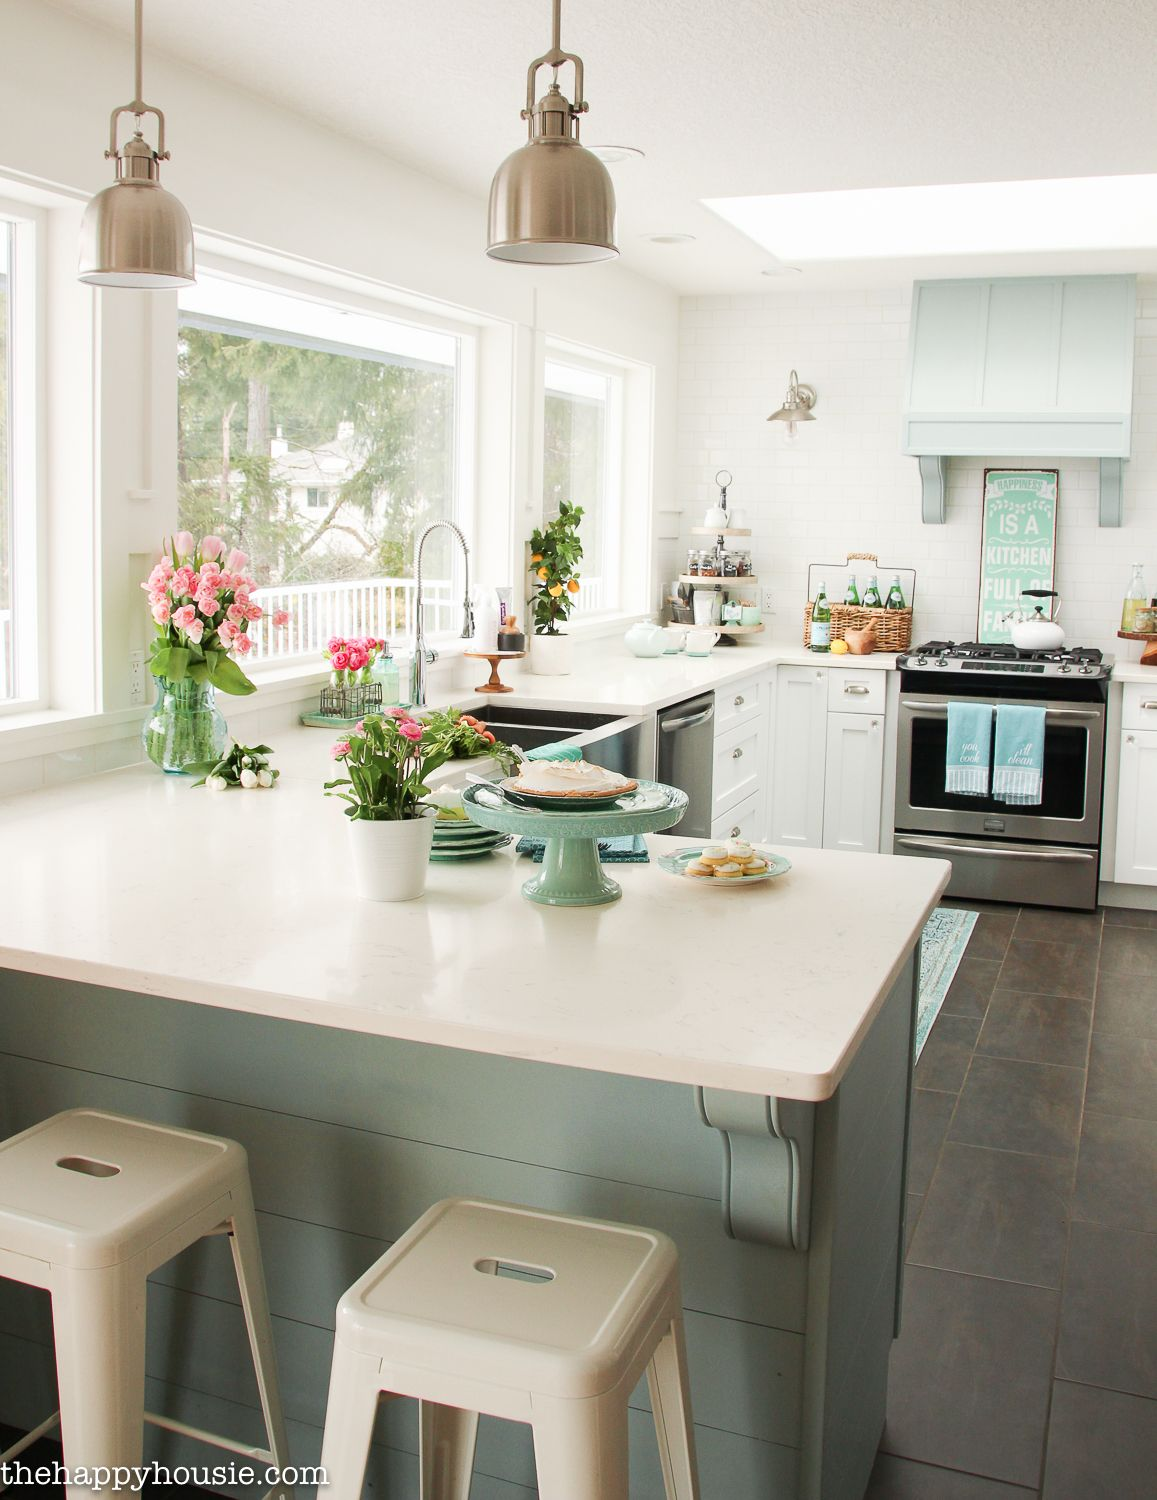 Coastal Cottage Style Spring Kitchen Tour The Happy Housie Beach Cottage Kitchens Cottage Style Interiors Coastal Cottage Style